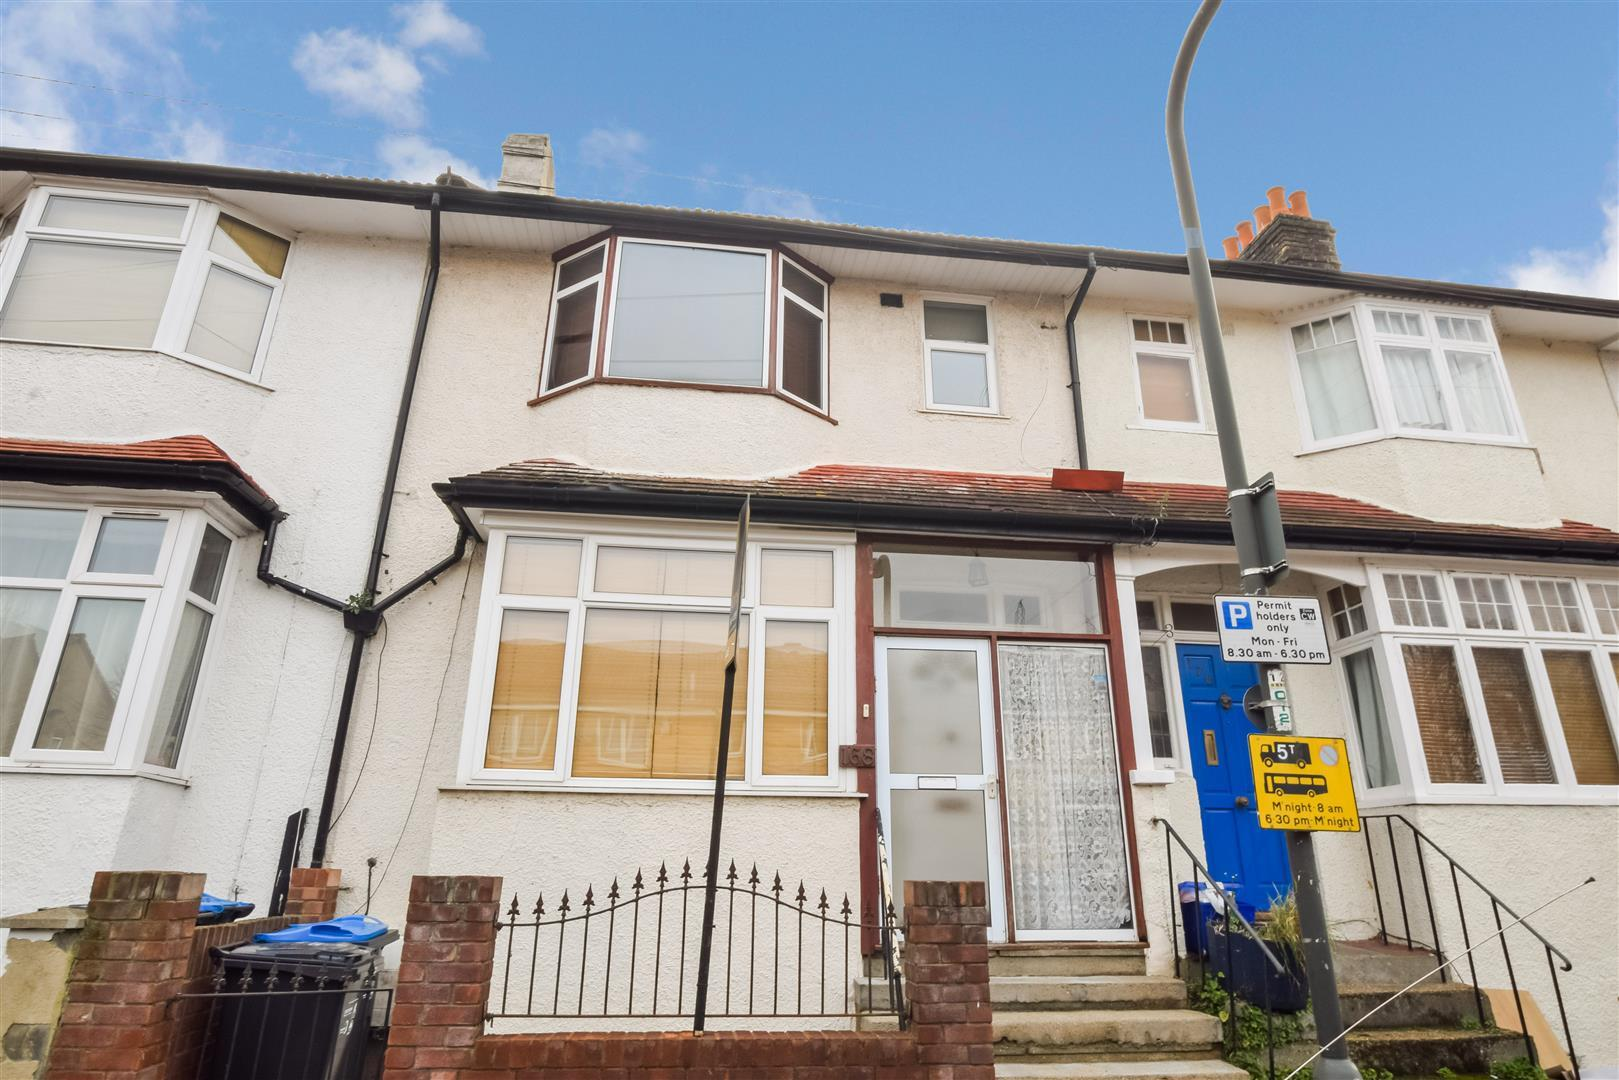 Boundary Road, Colliers Wood